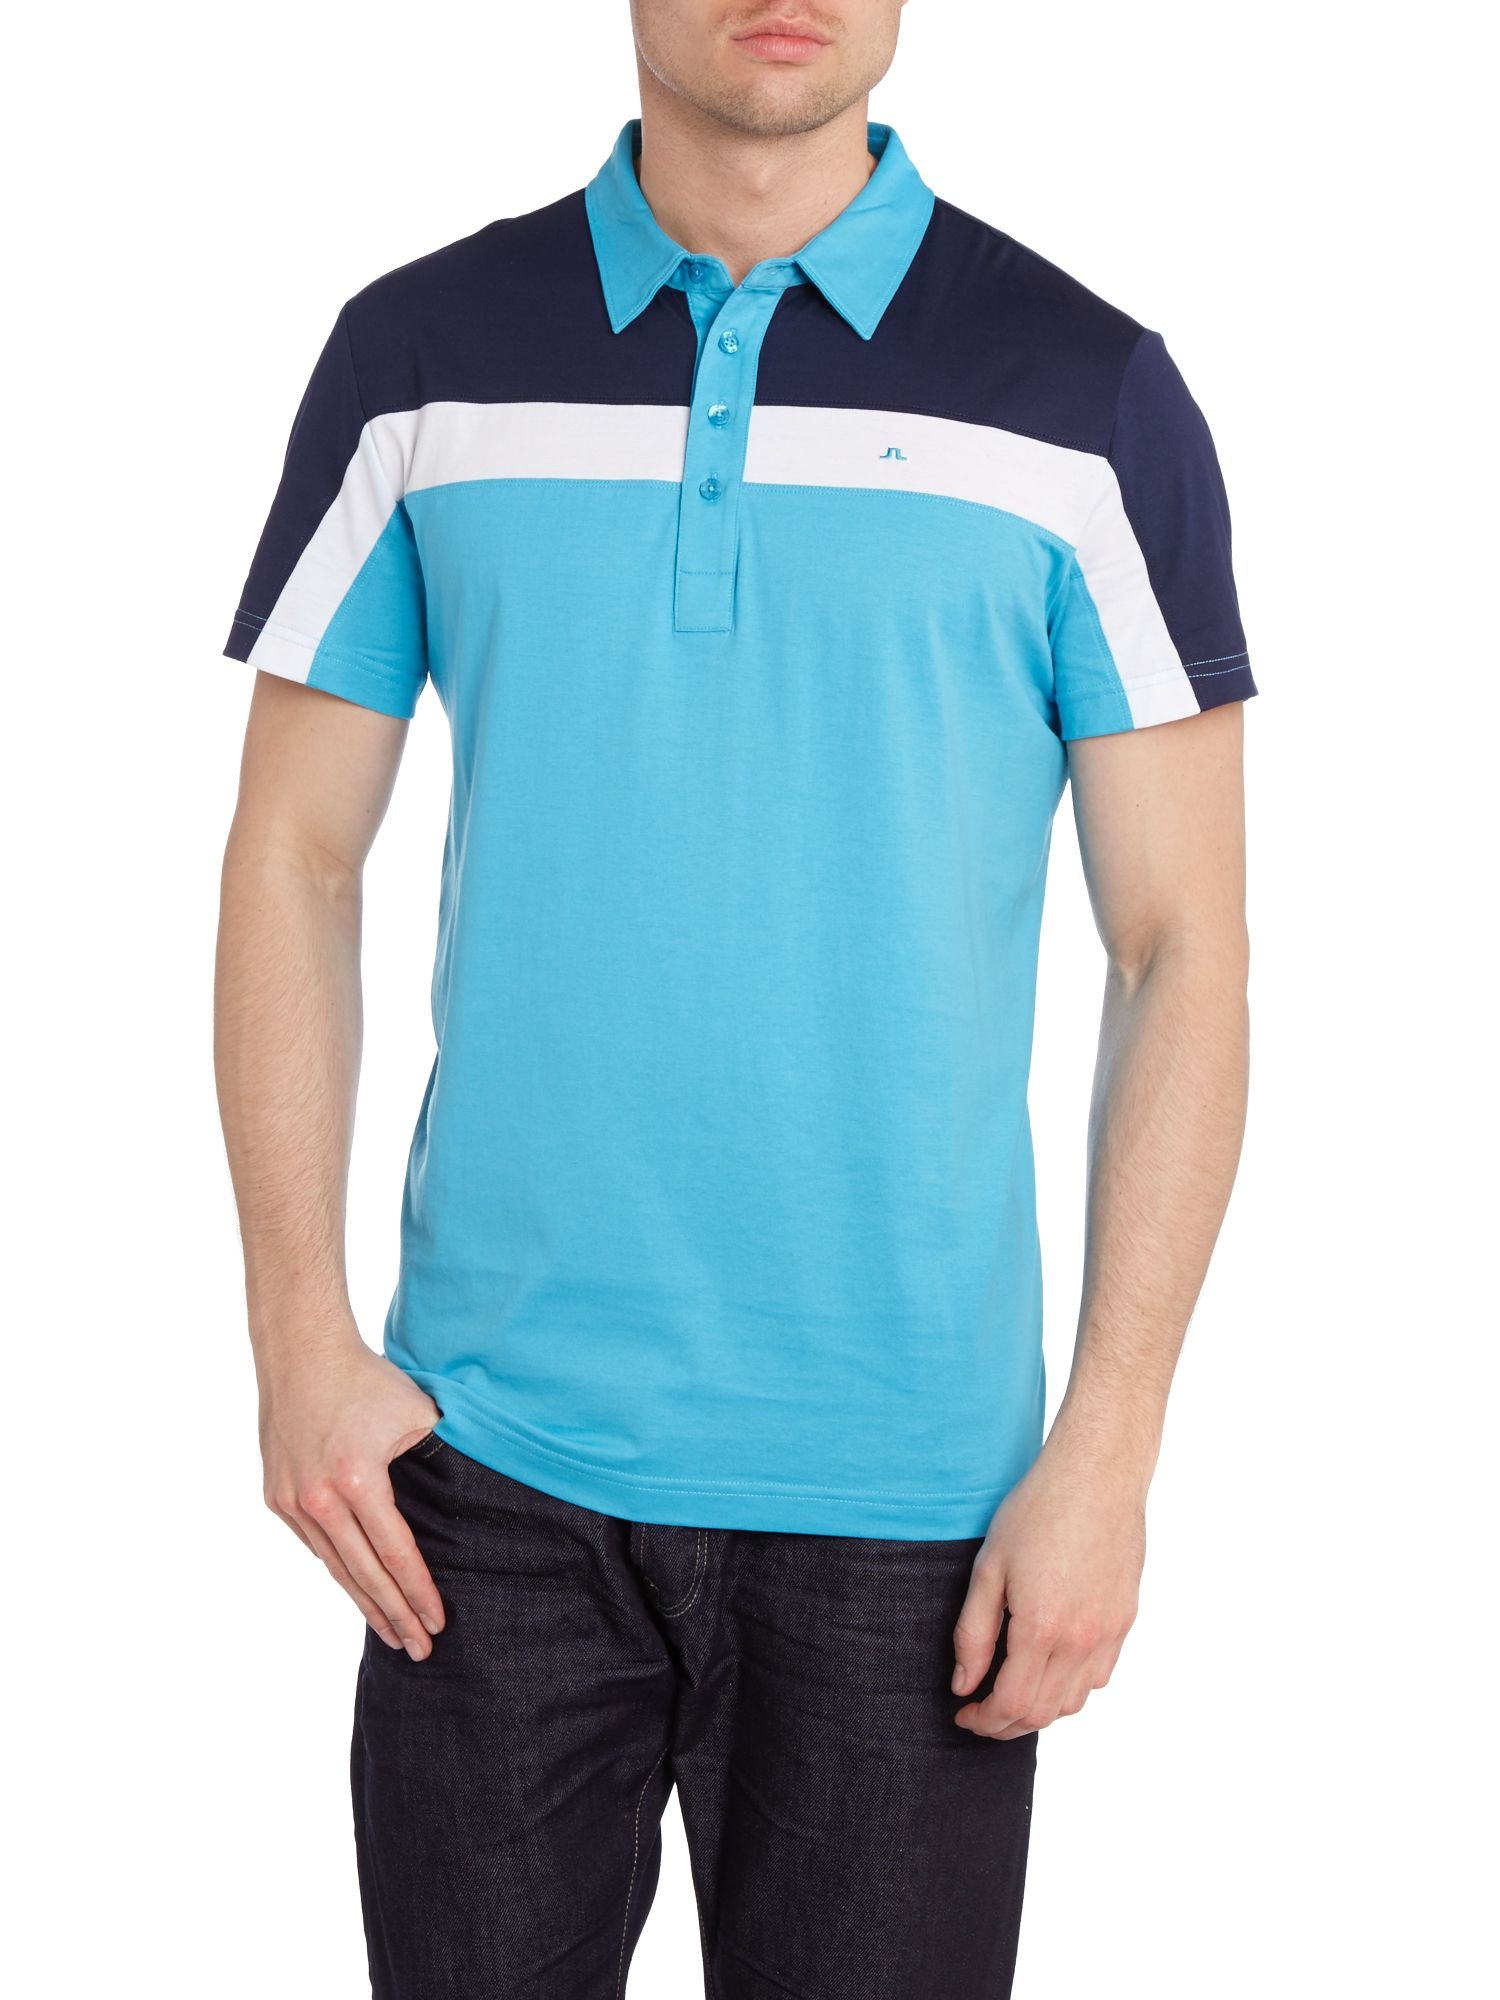 Chriss lux bridge polo shirt